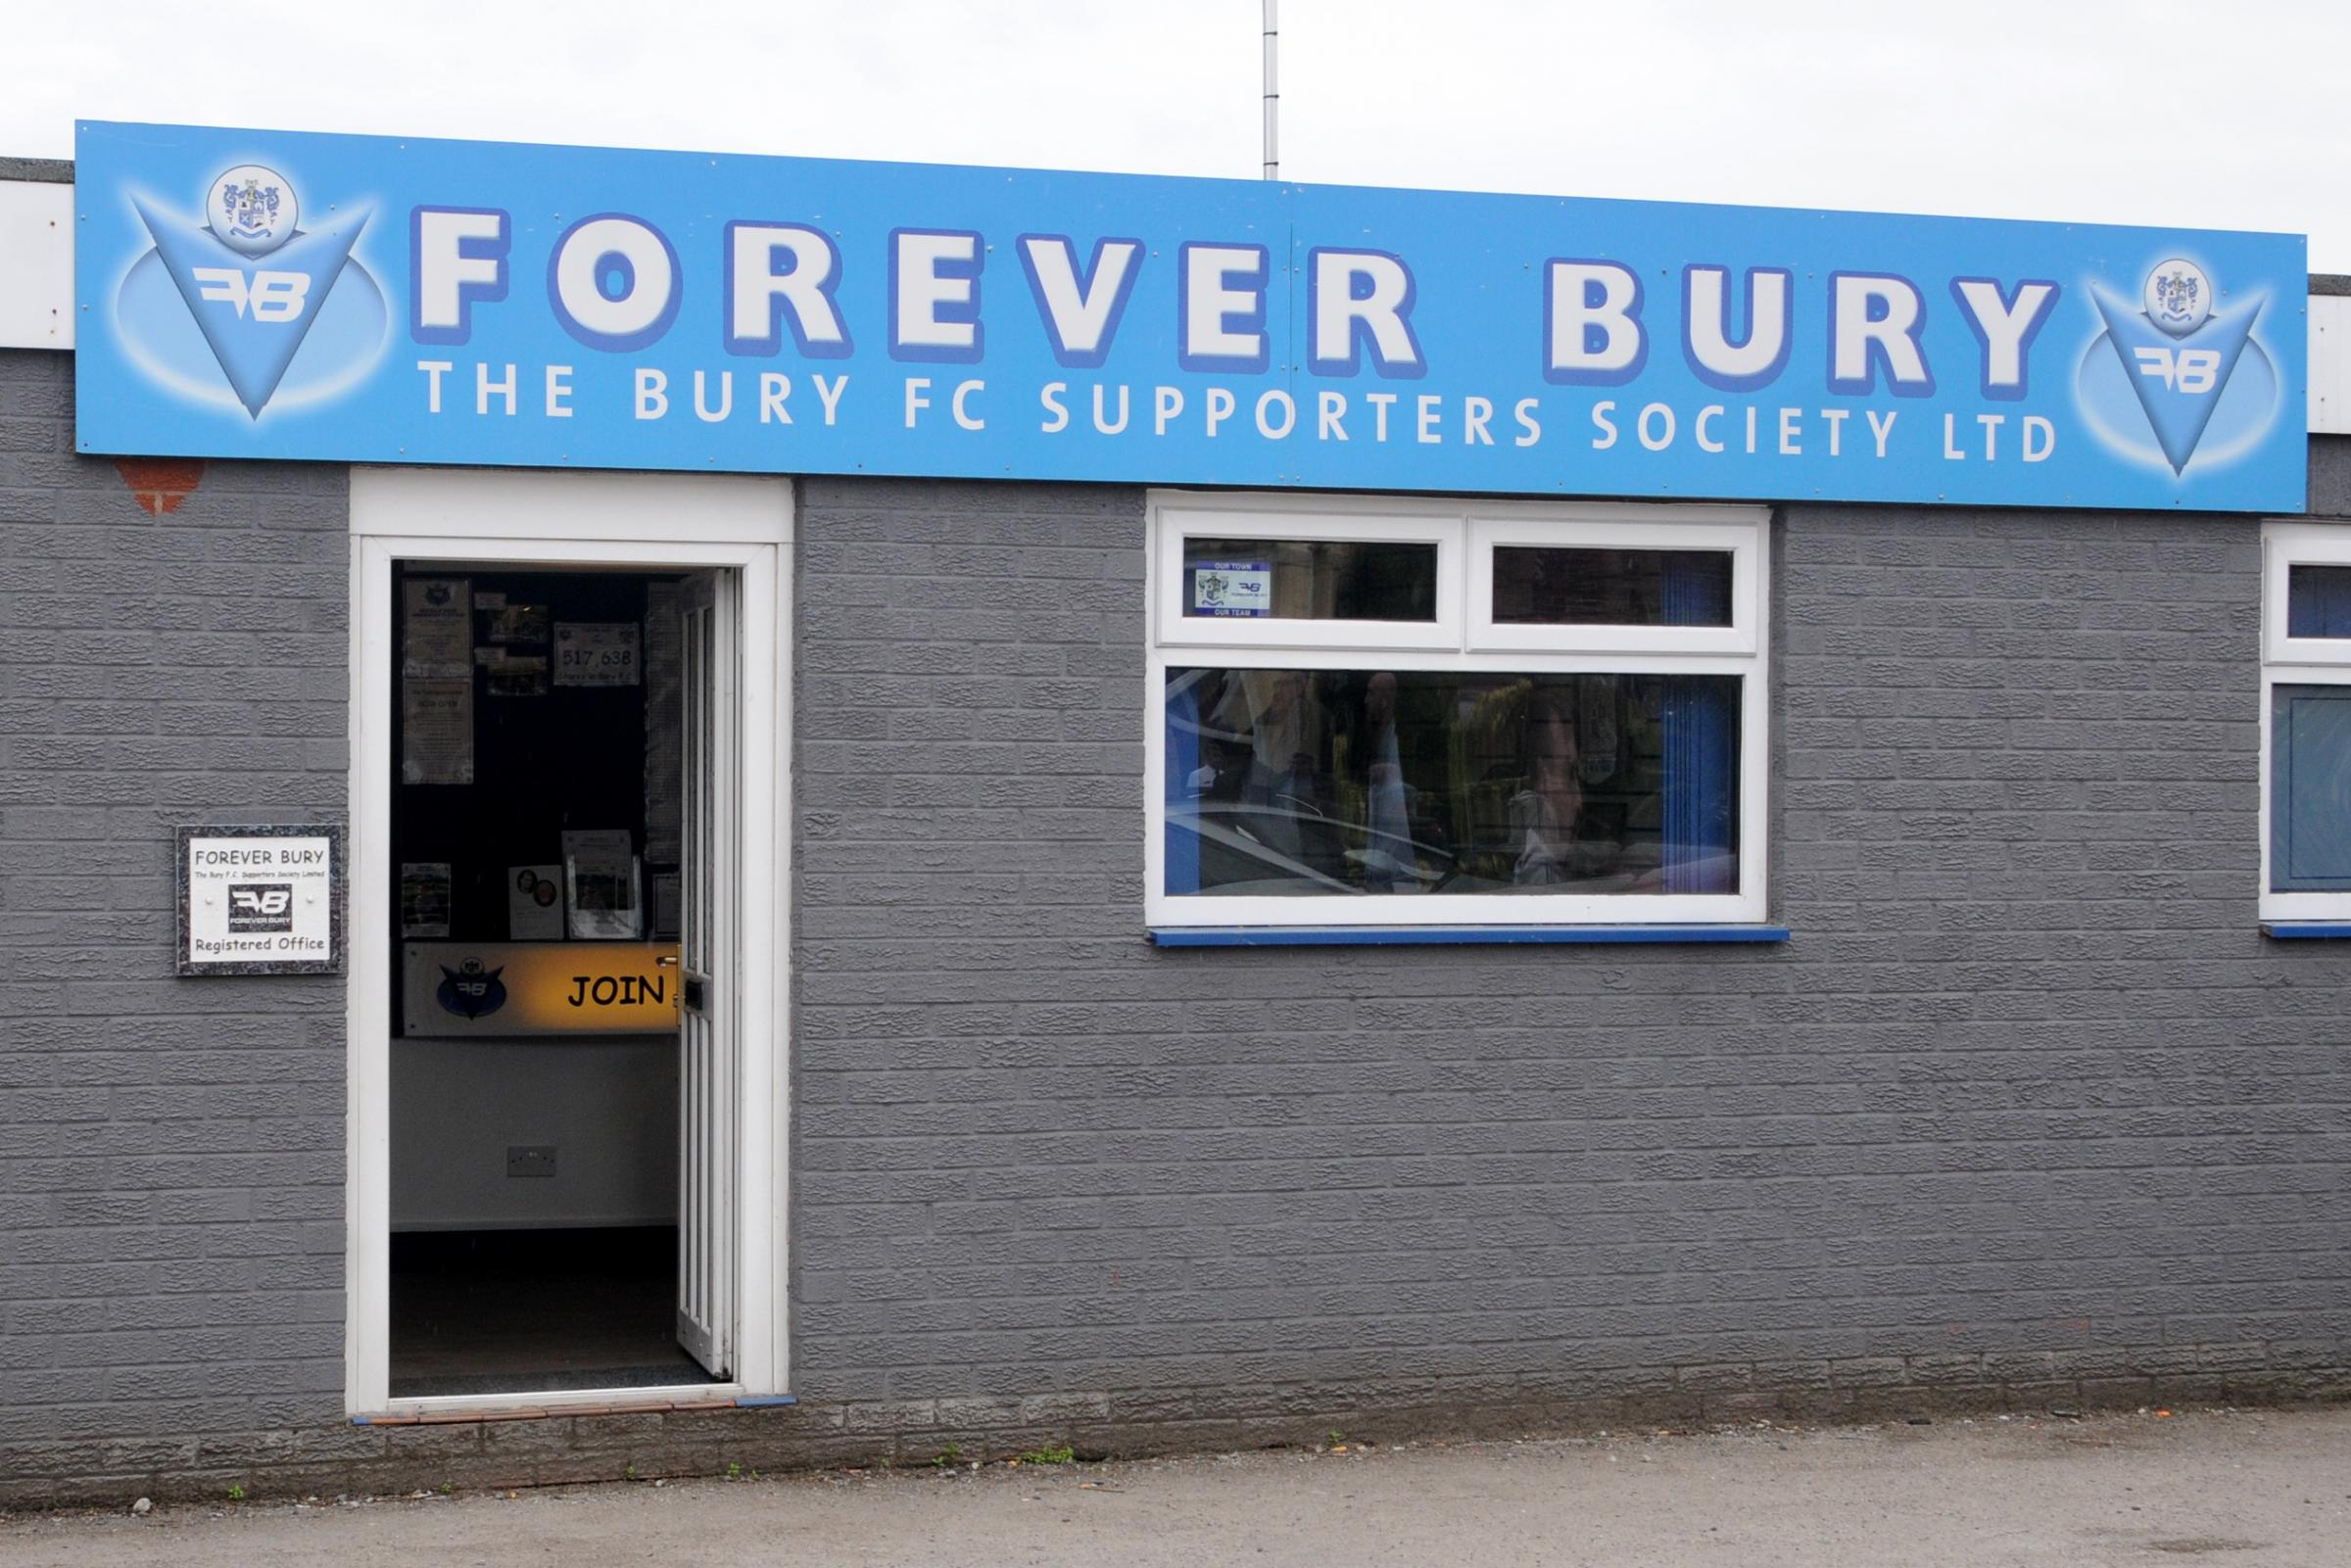 Forever Bury release statement underlining their stance on Shakers' future